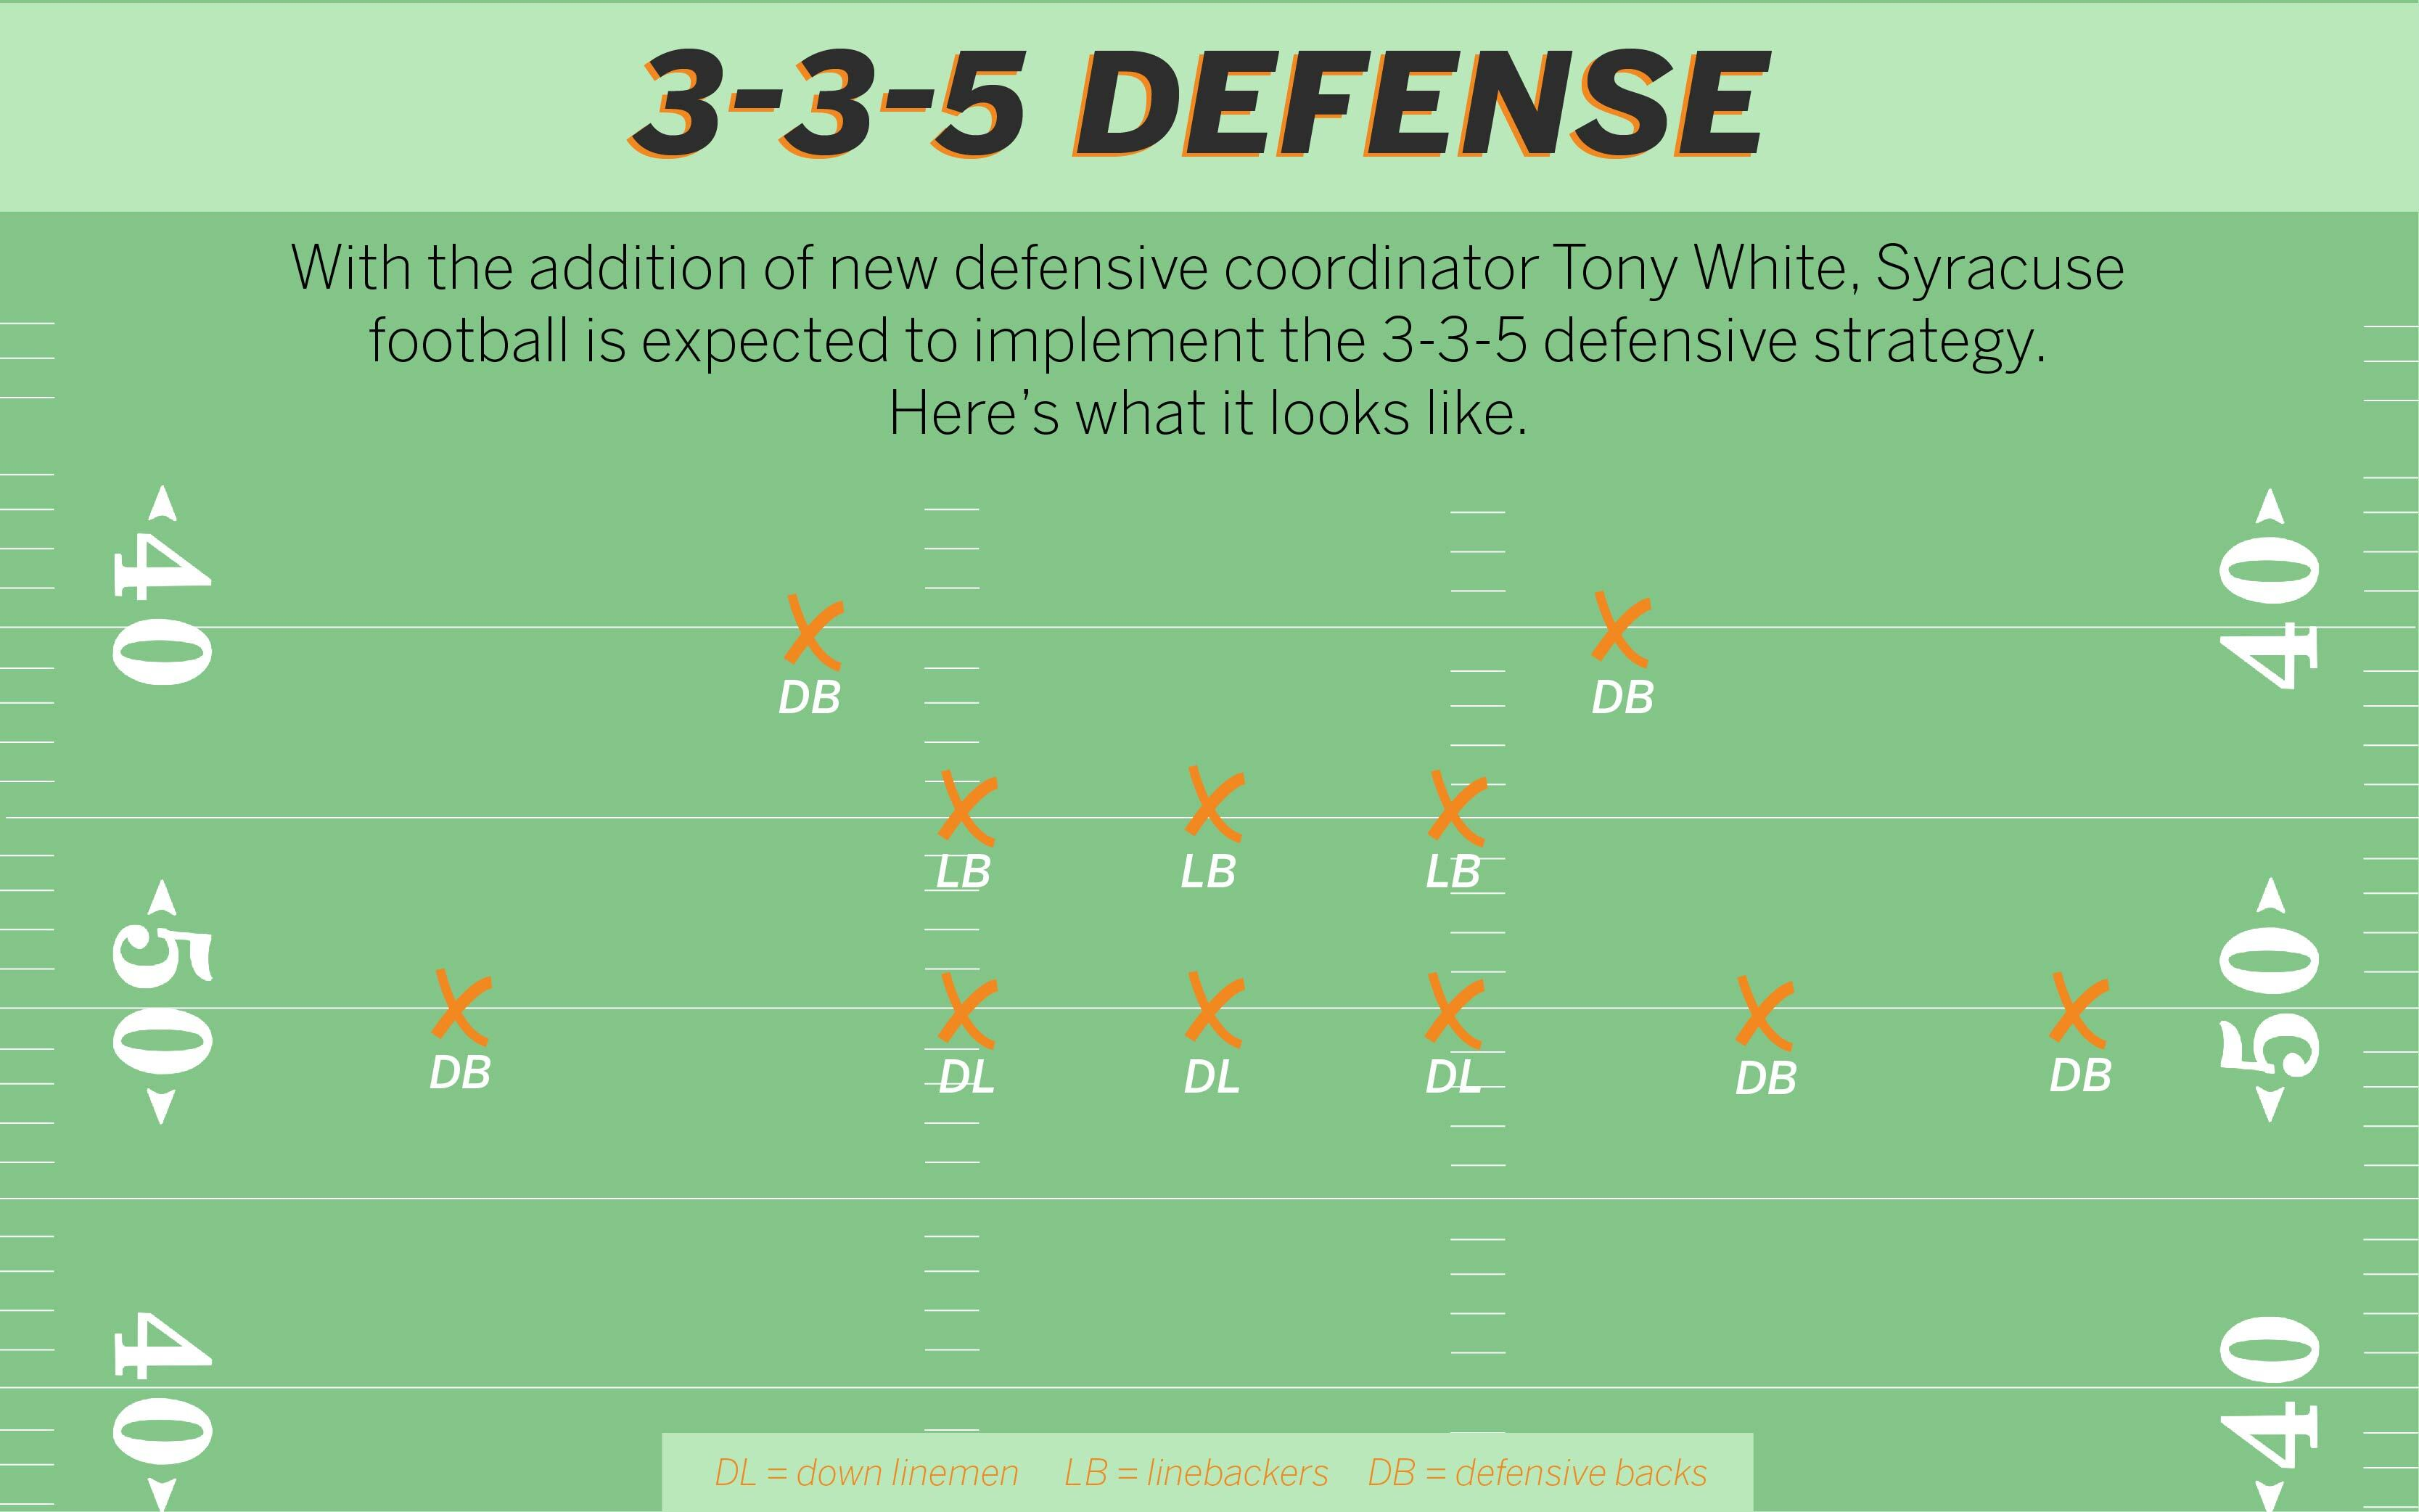 SU implements the 3-3-5 defense